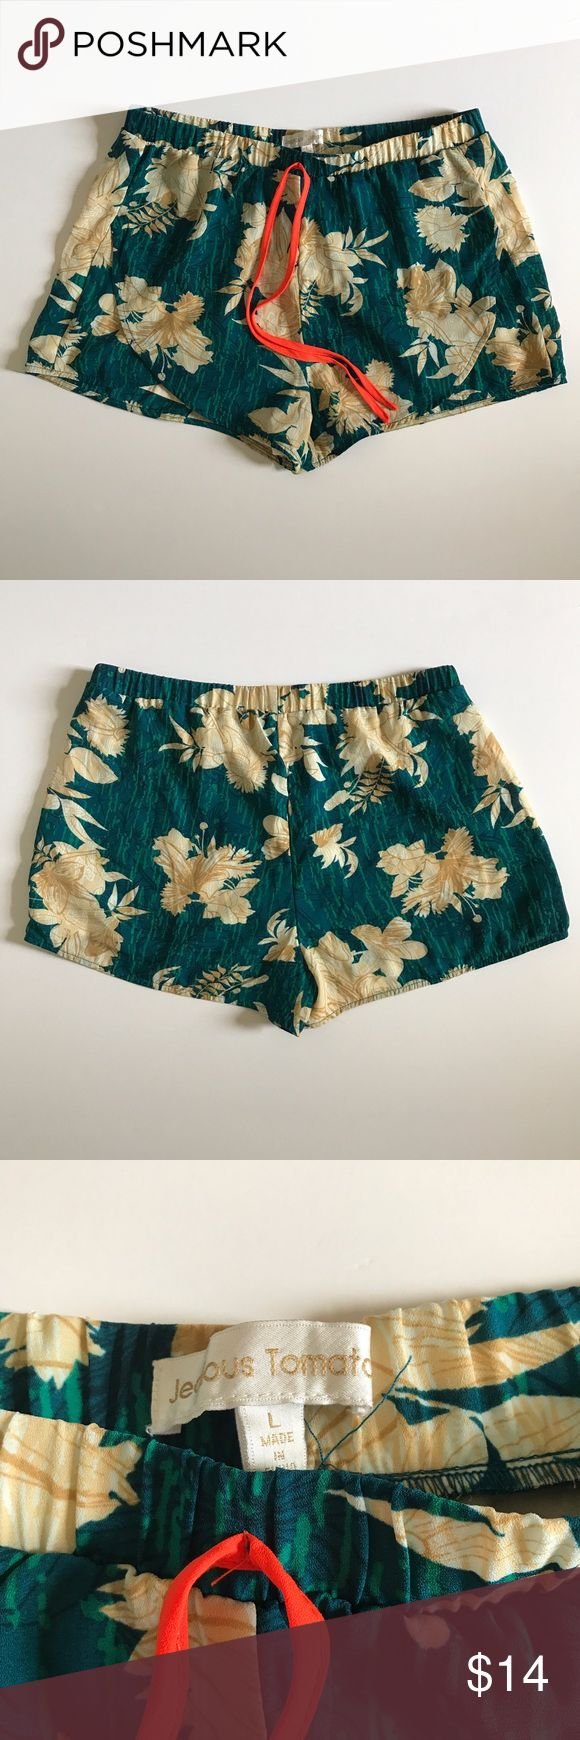 Jealous Tomato Women's Floral Shorts Size Large Jealous Tomato Women's Floral Shorts Size Large Hawaiian Tropical! Preowned!! Excellent Condition!! Lined 100% Polyester jealous tomato Shorts